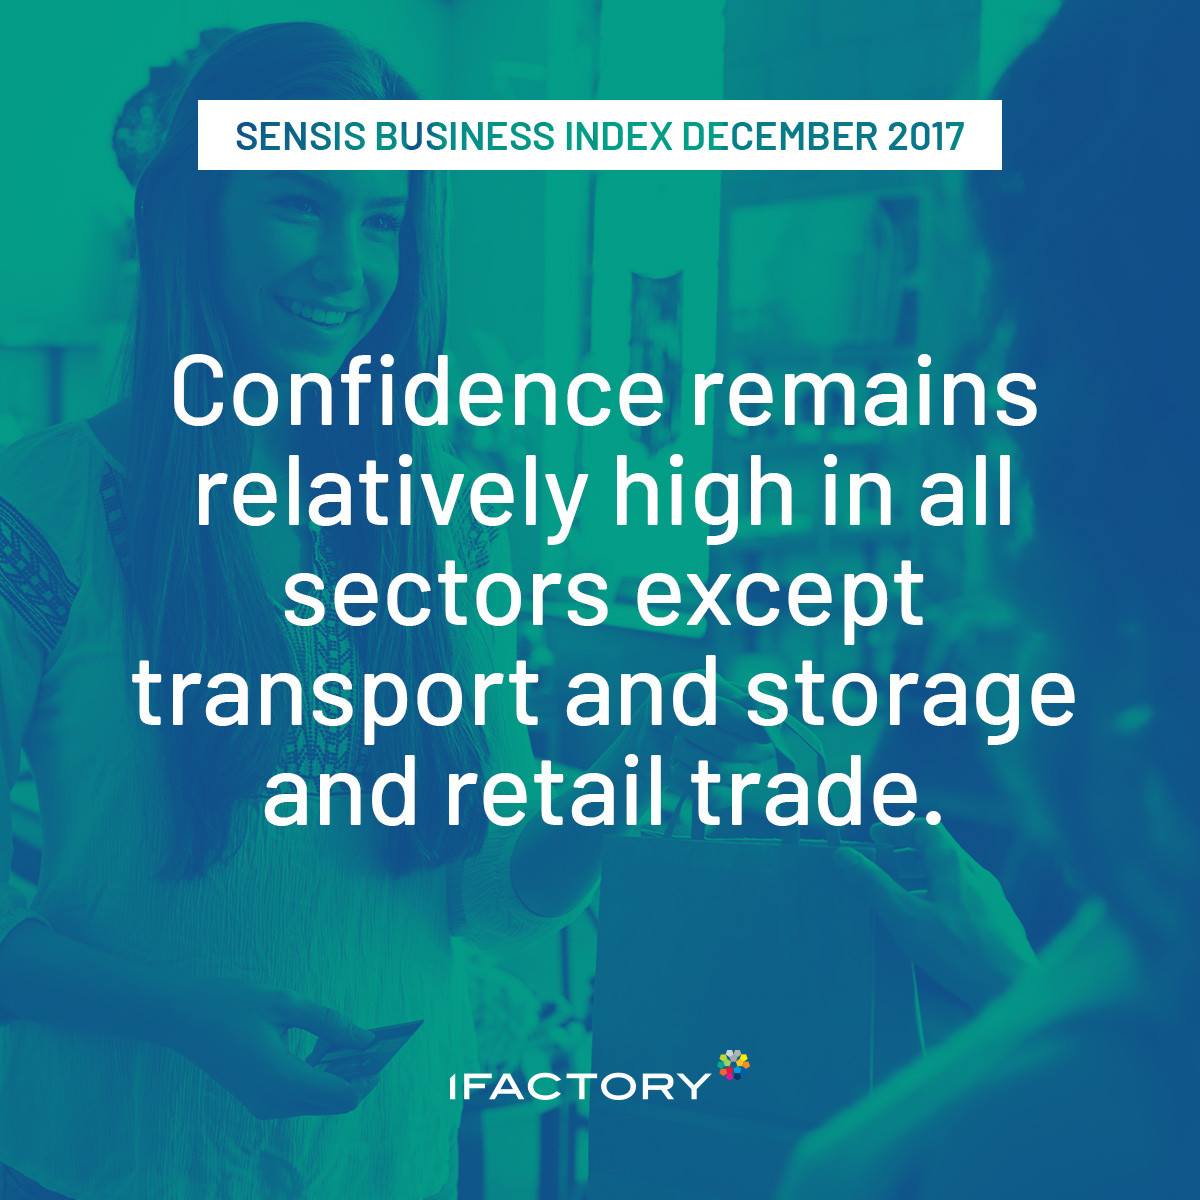 Confidence-remains-relatively-high-in-all-sectors-except-transport-and-storage-and-retail-trade